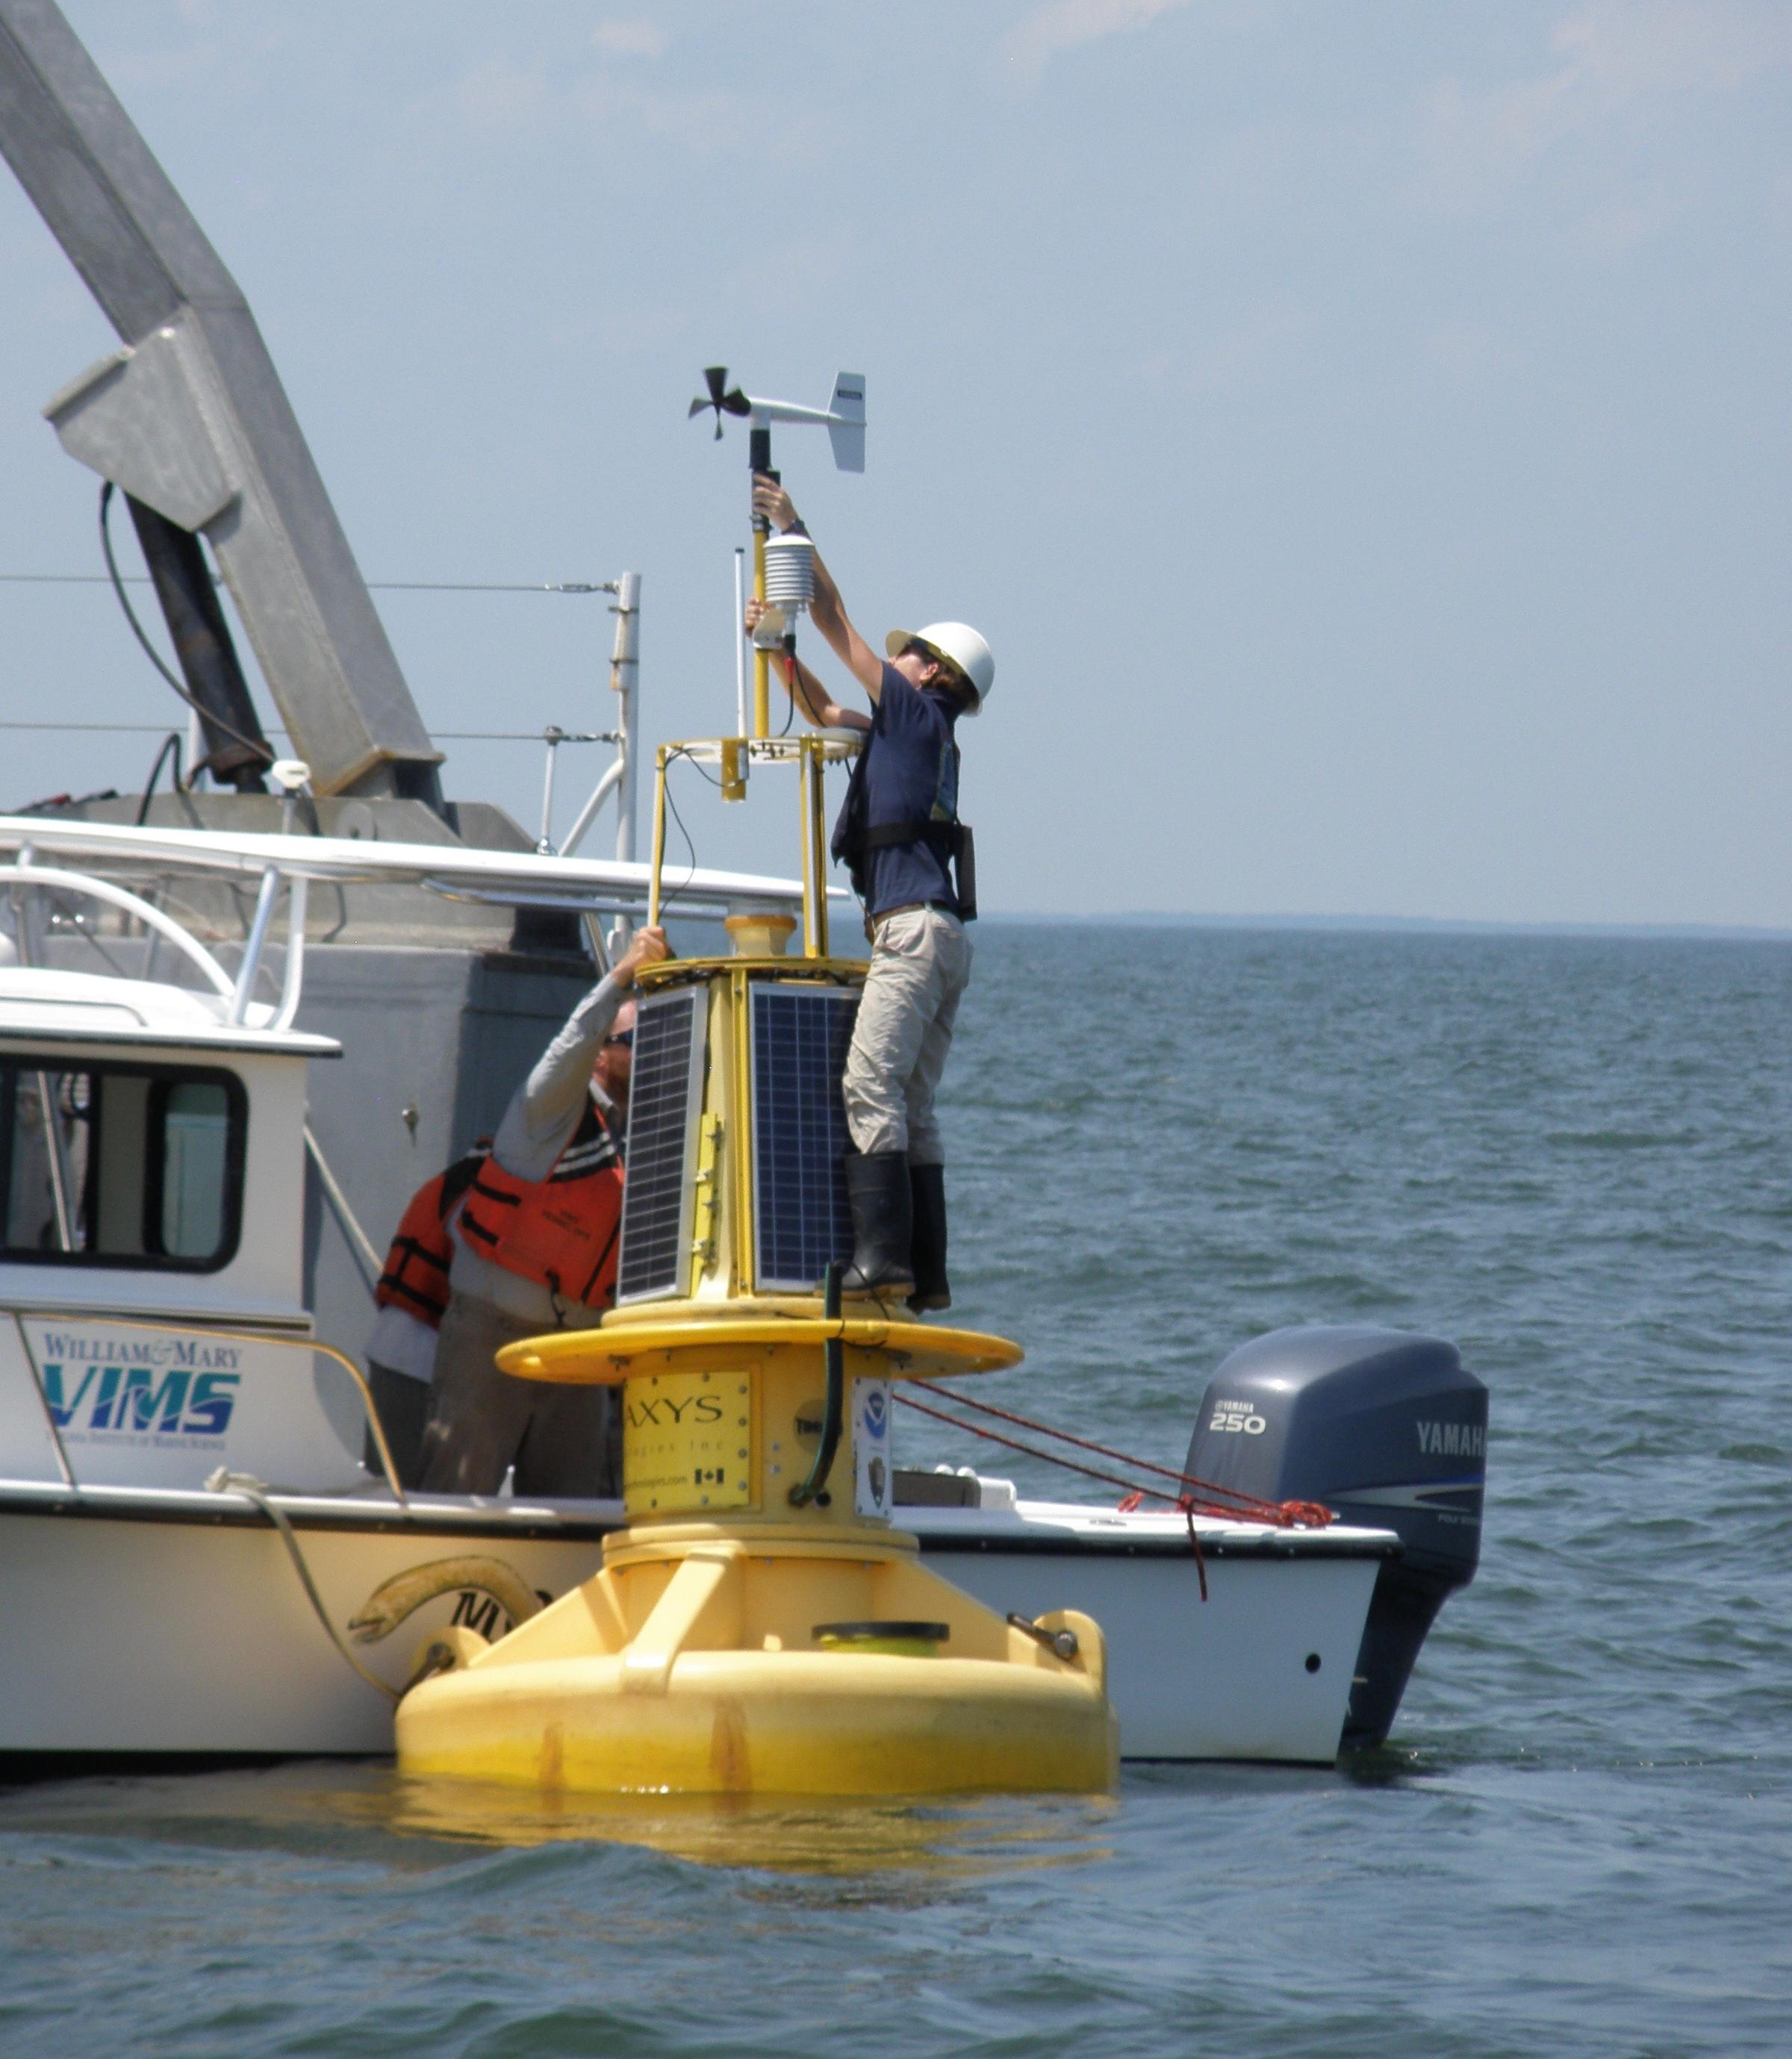 NOAA's Newest Smart Buoy Deployed in the York River | WVTF